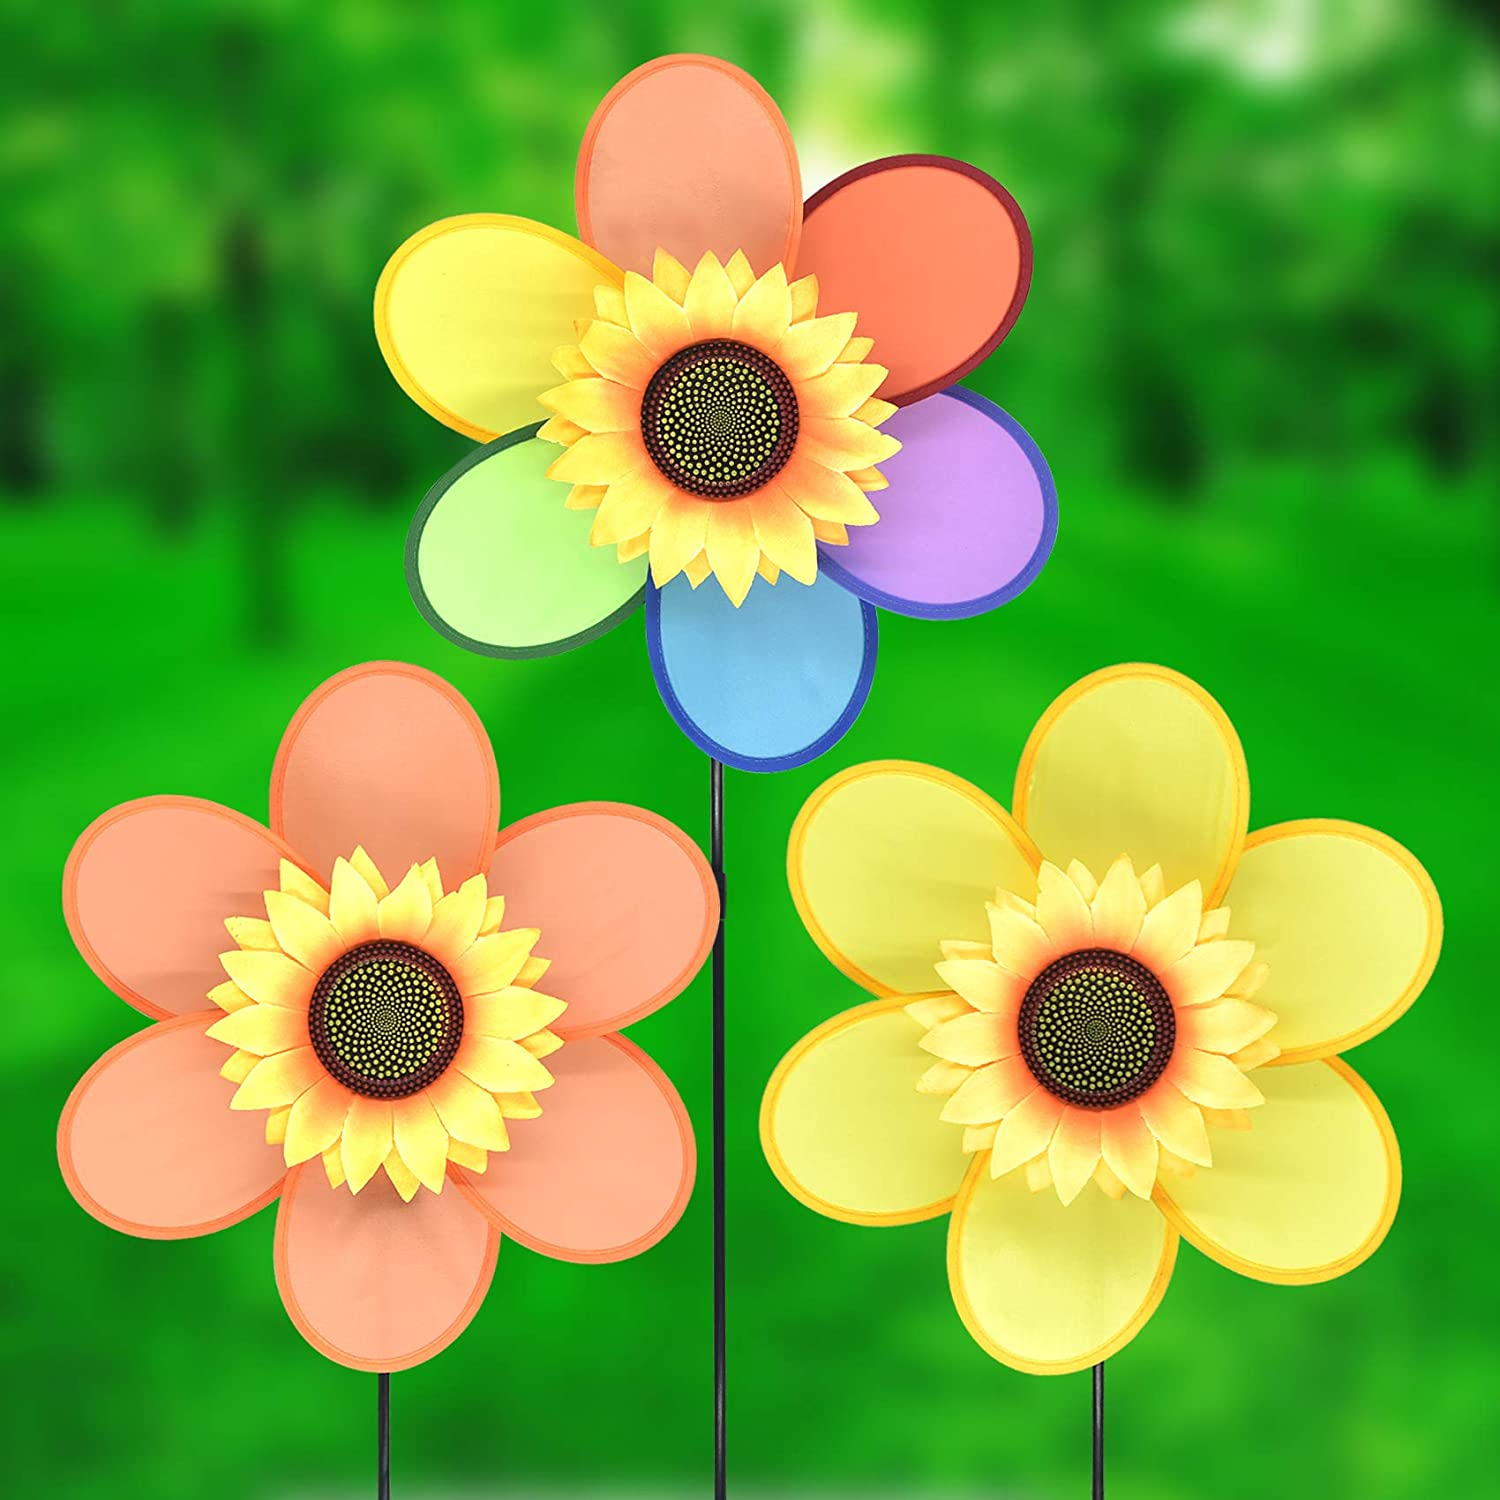 FENELY Sunflower Garden Pinwheels Windmill Wind Spinner Kids Toys for Yard Decor Bird Deterrent Decorative Garden Stakes Outdoor Whimsical Baby Gifts